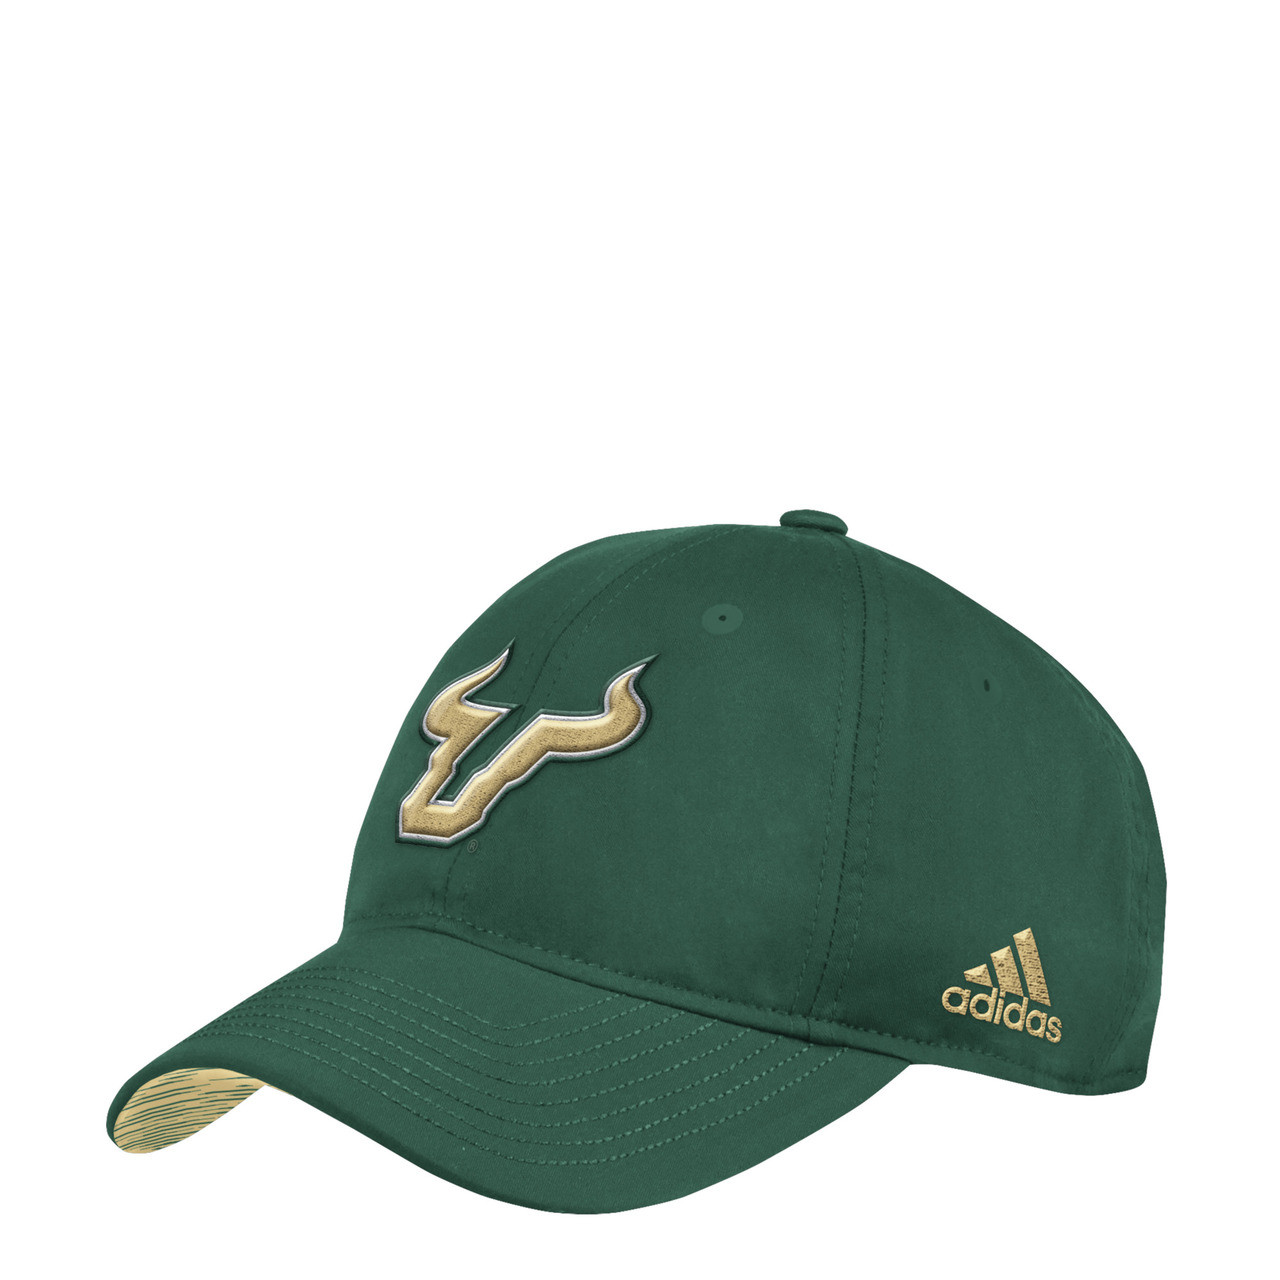 Men s USF Bulls adidas Adjustable Green Slouch Hat - Tampa Bay Sports 11768cbf462